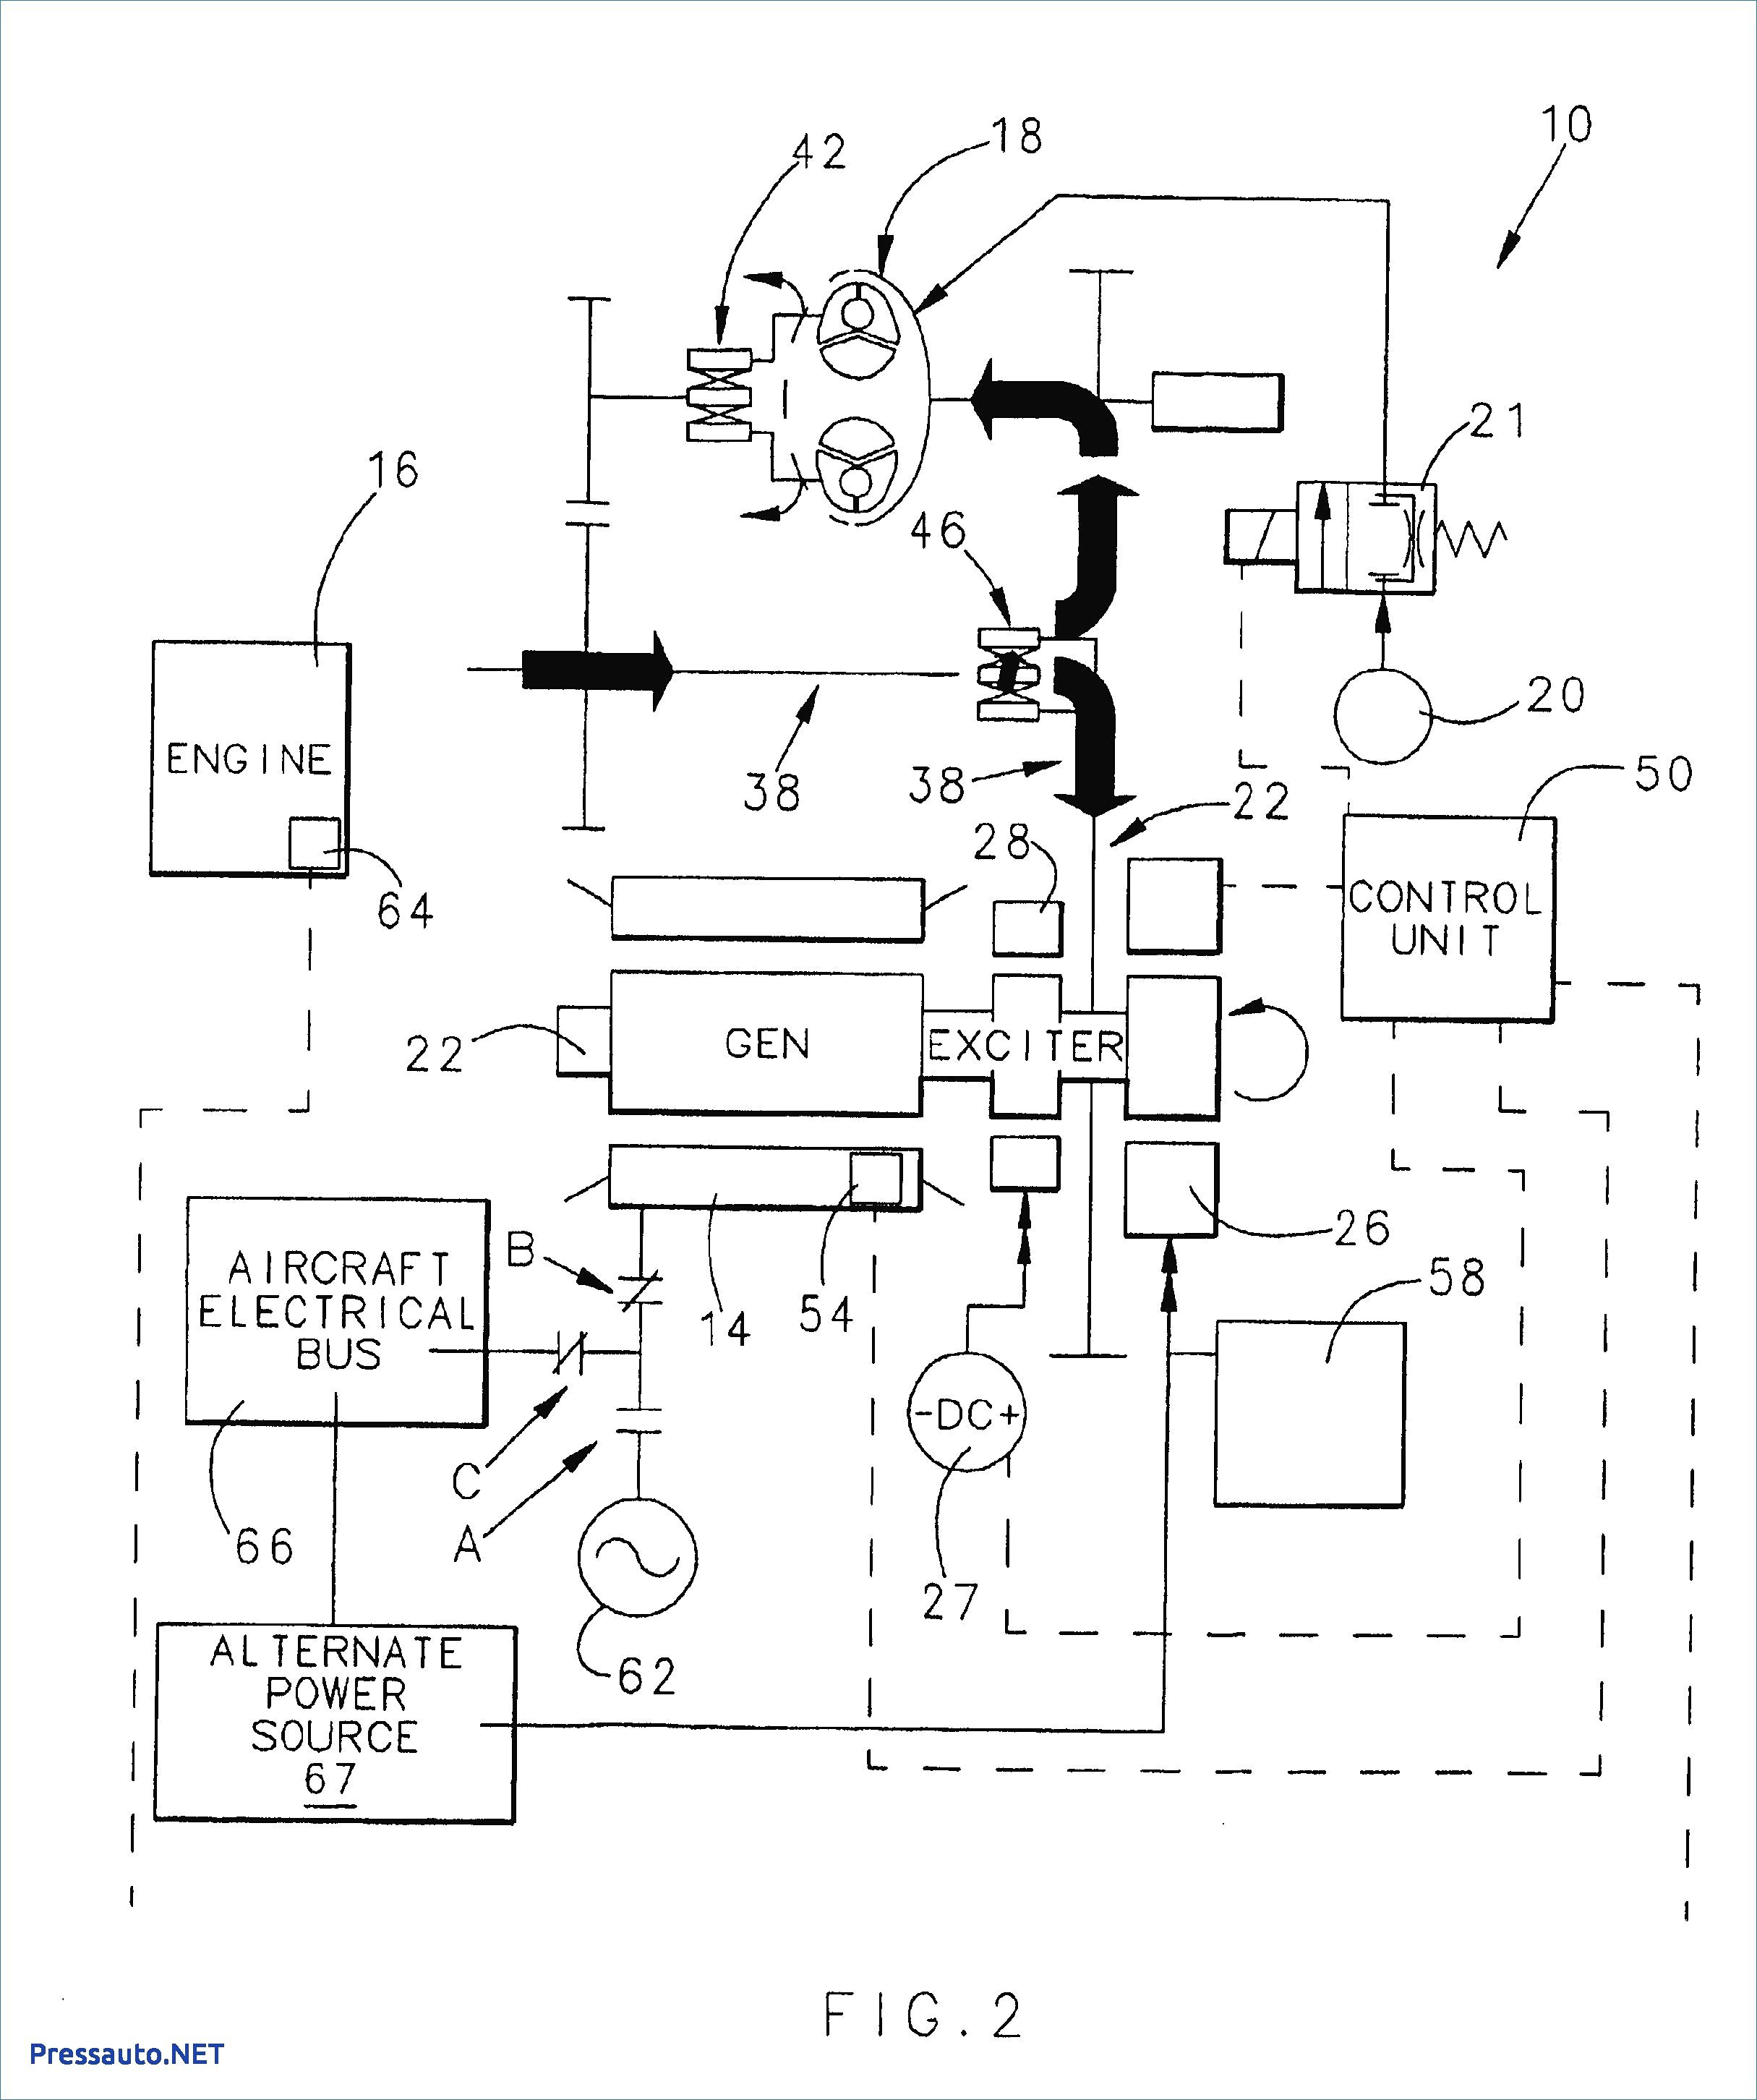 Howhit 150cc Engine Diagram 150cc Engine Diagram Pdf Wiring Wiring Diagrams Instructions Of Howhit 150cc Engine Diagram Gy6 Go Kart Wiring Diagram Download